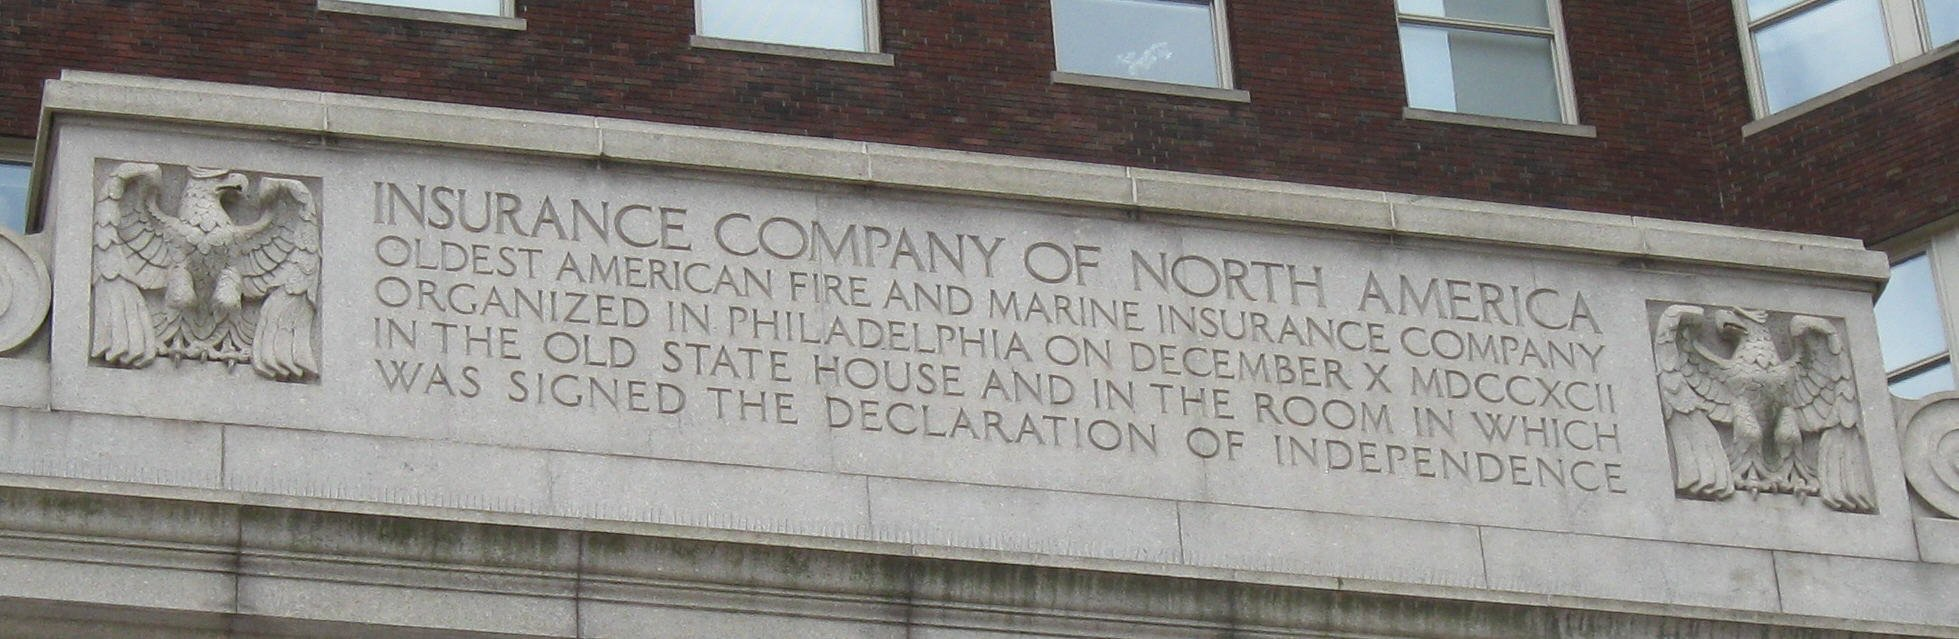 The inscription on the building that commemorates the founding of INA.